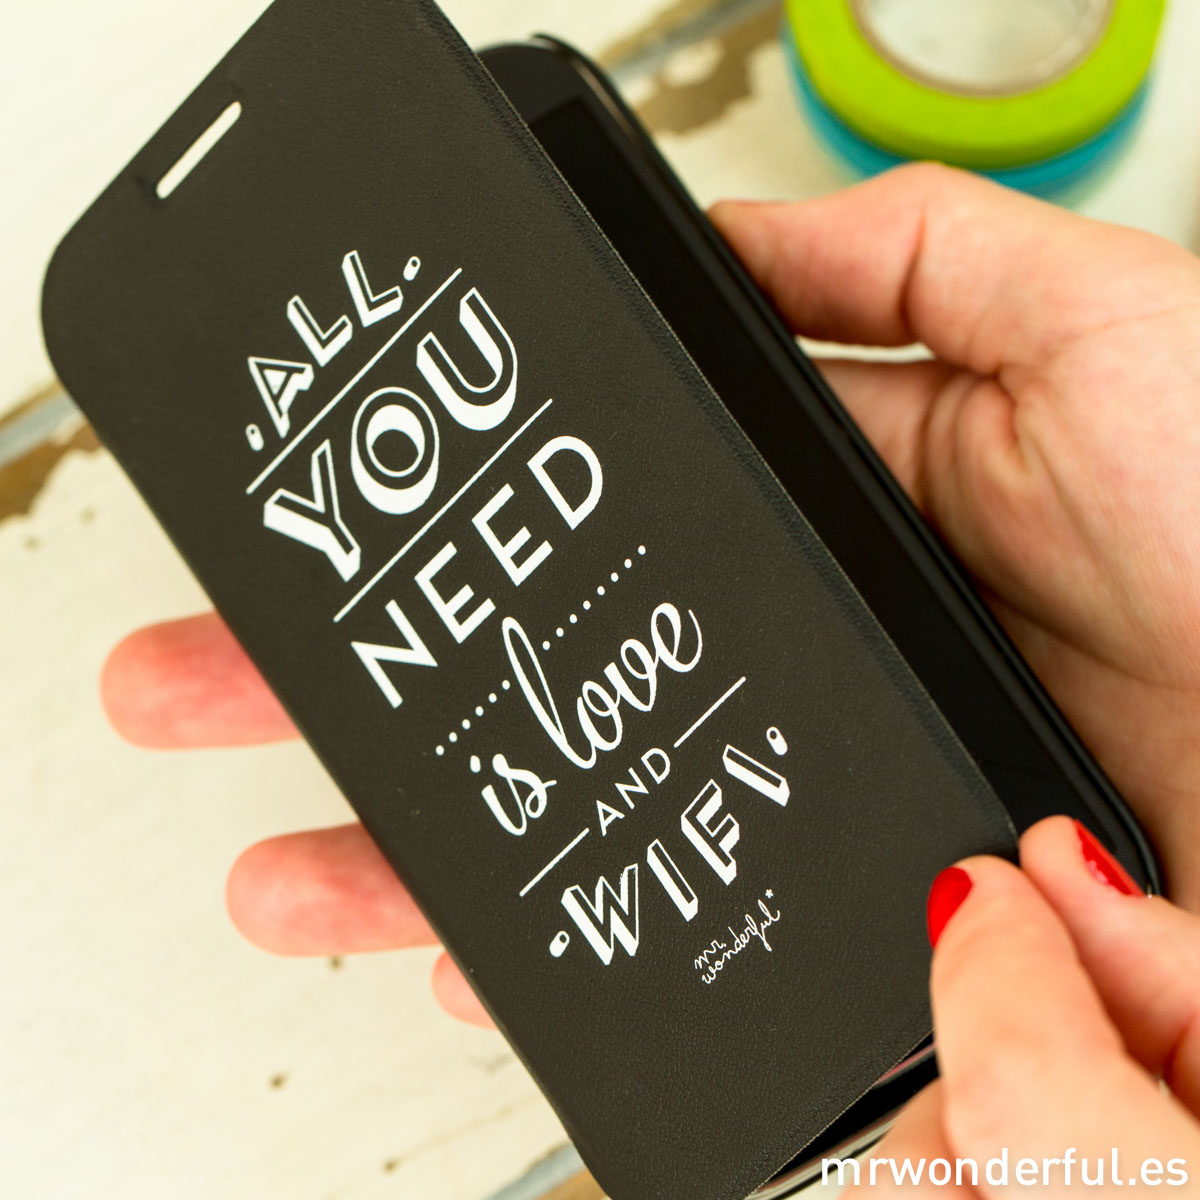 mrwonderful_MRFOL001_funda-negra-samsung-galaxy-S4_all-you-need-love-wifi-31